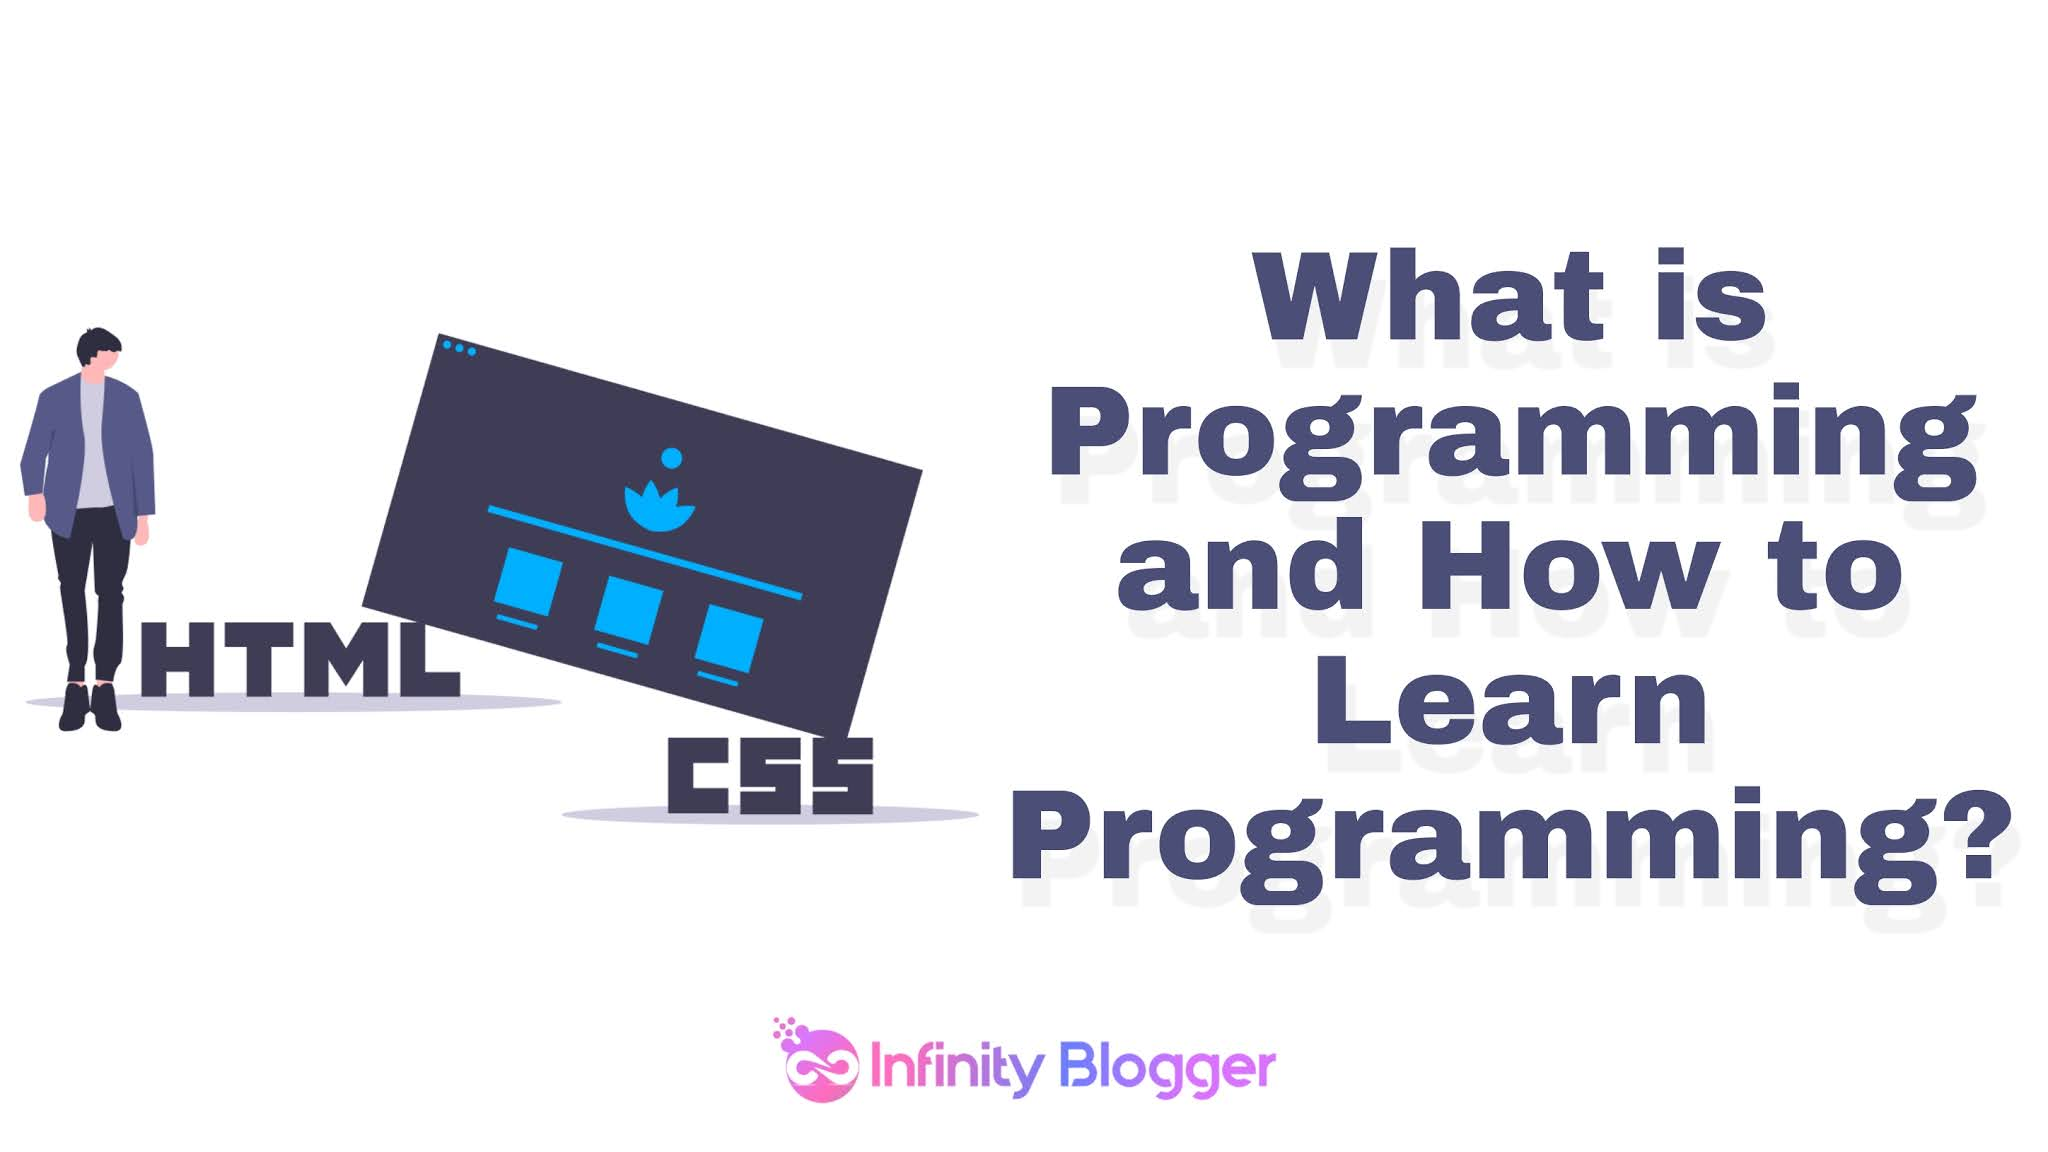 What is programming and how to learn programming?